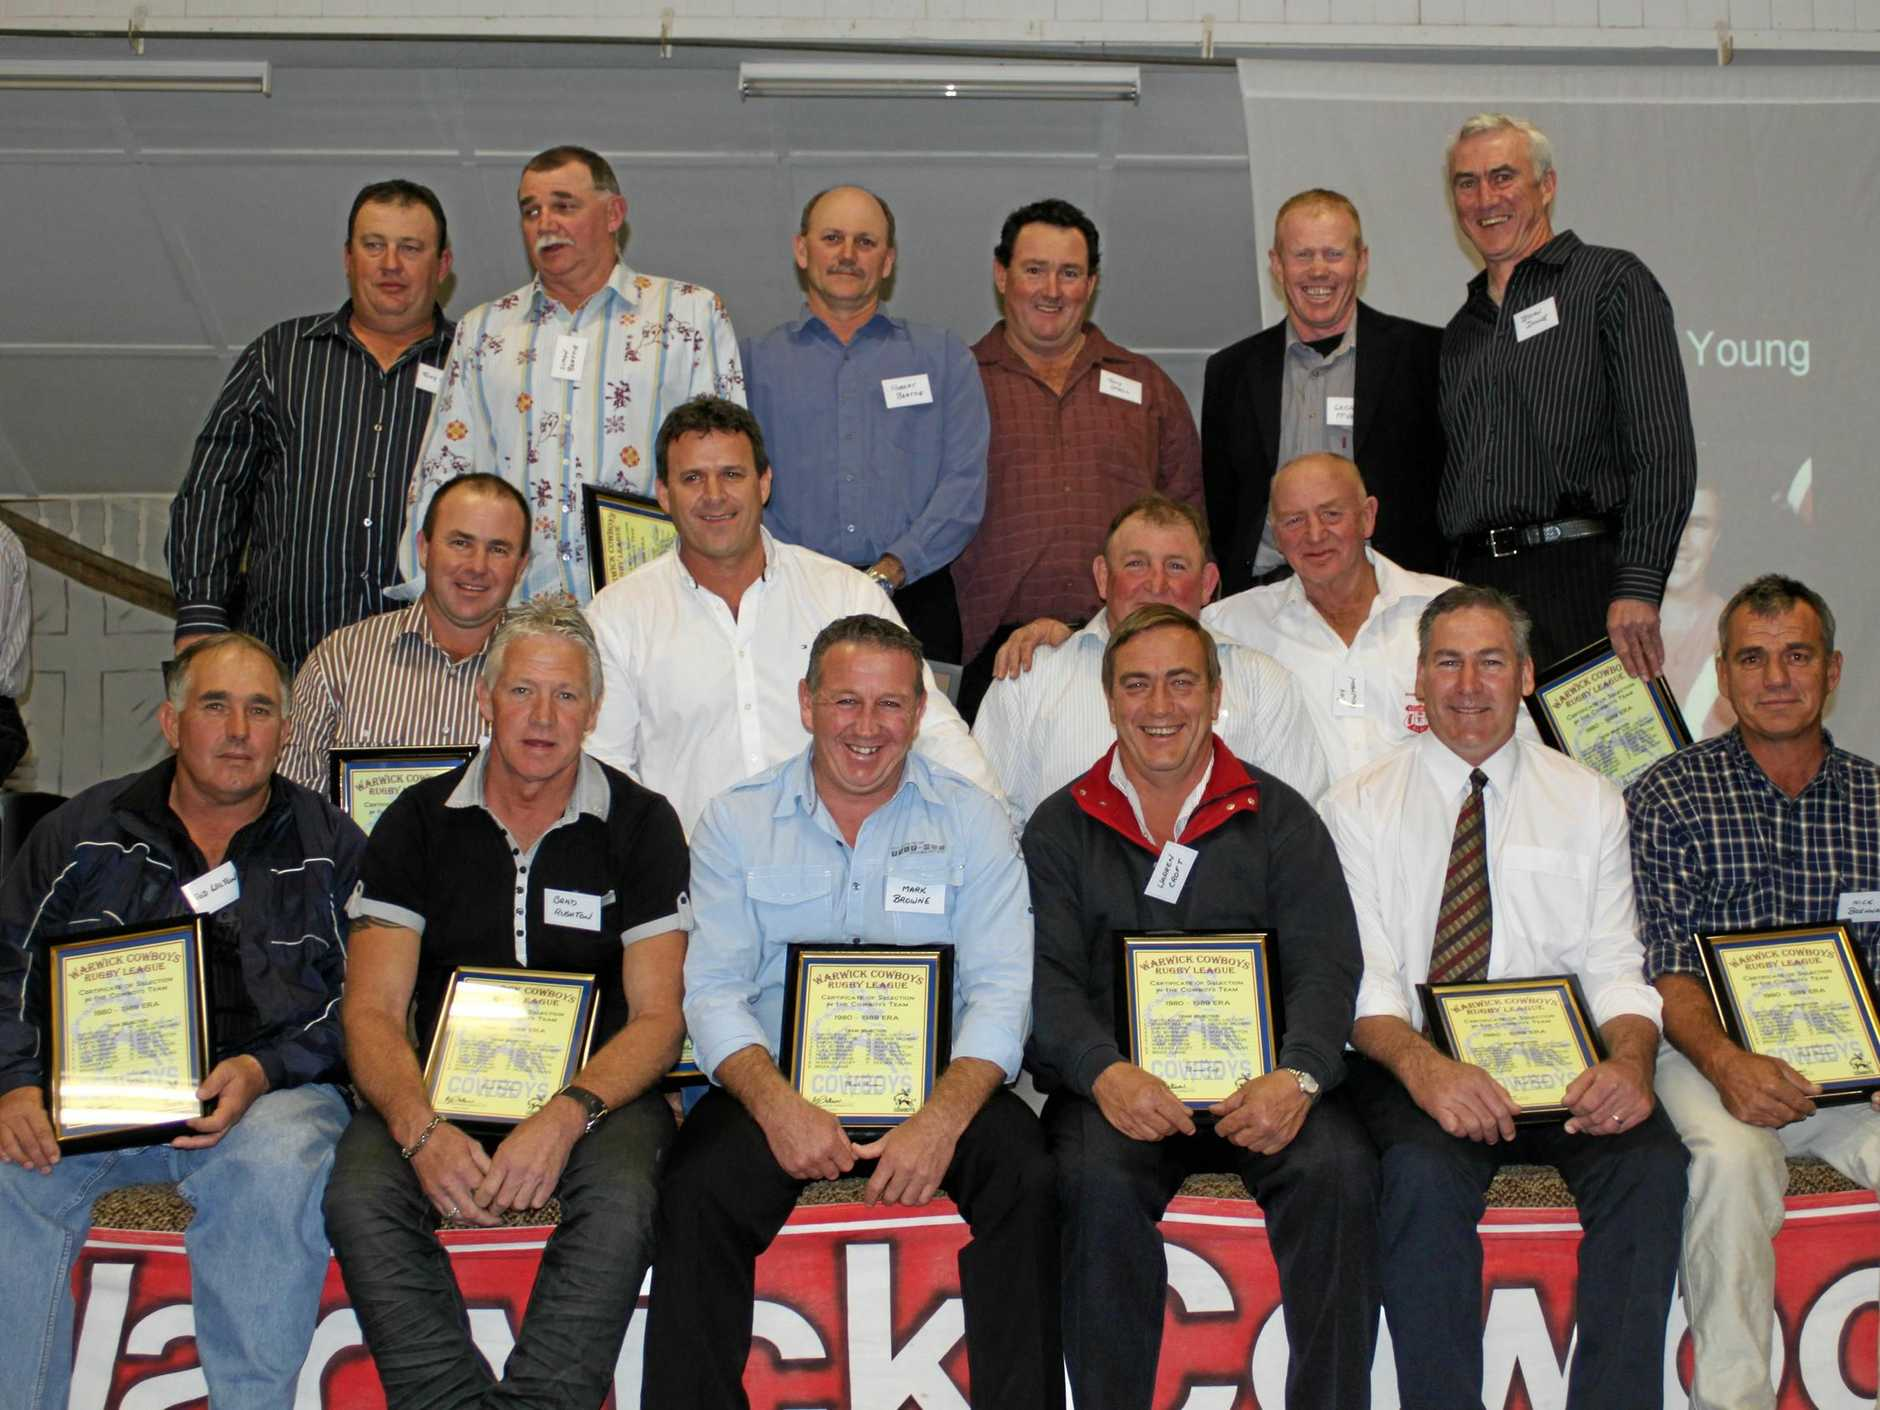 CLASS TEAM: The Cowboys team of the 1980s (back, from left) Tony Watson, Simon Beattie, Rob Beattie, Tony Small, George McVeigh, Brian Dunne, (middle) Fraser Young, David Abood, Rod Neal, Ray Bowman, (front) Rod Wilton, Brad Rushton, Mark Browne, Warren Croft, Noel Loudon and Nick Brennan. Luke Brennan was also in team.